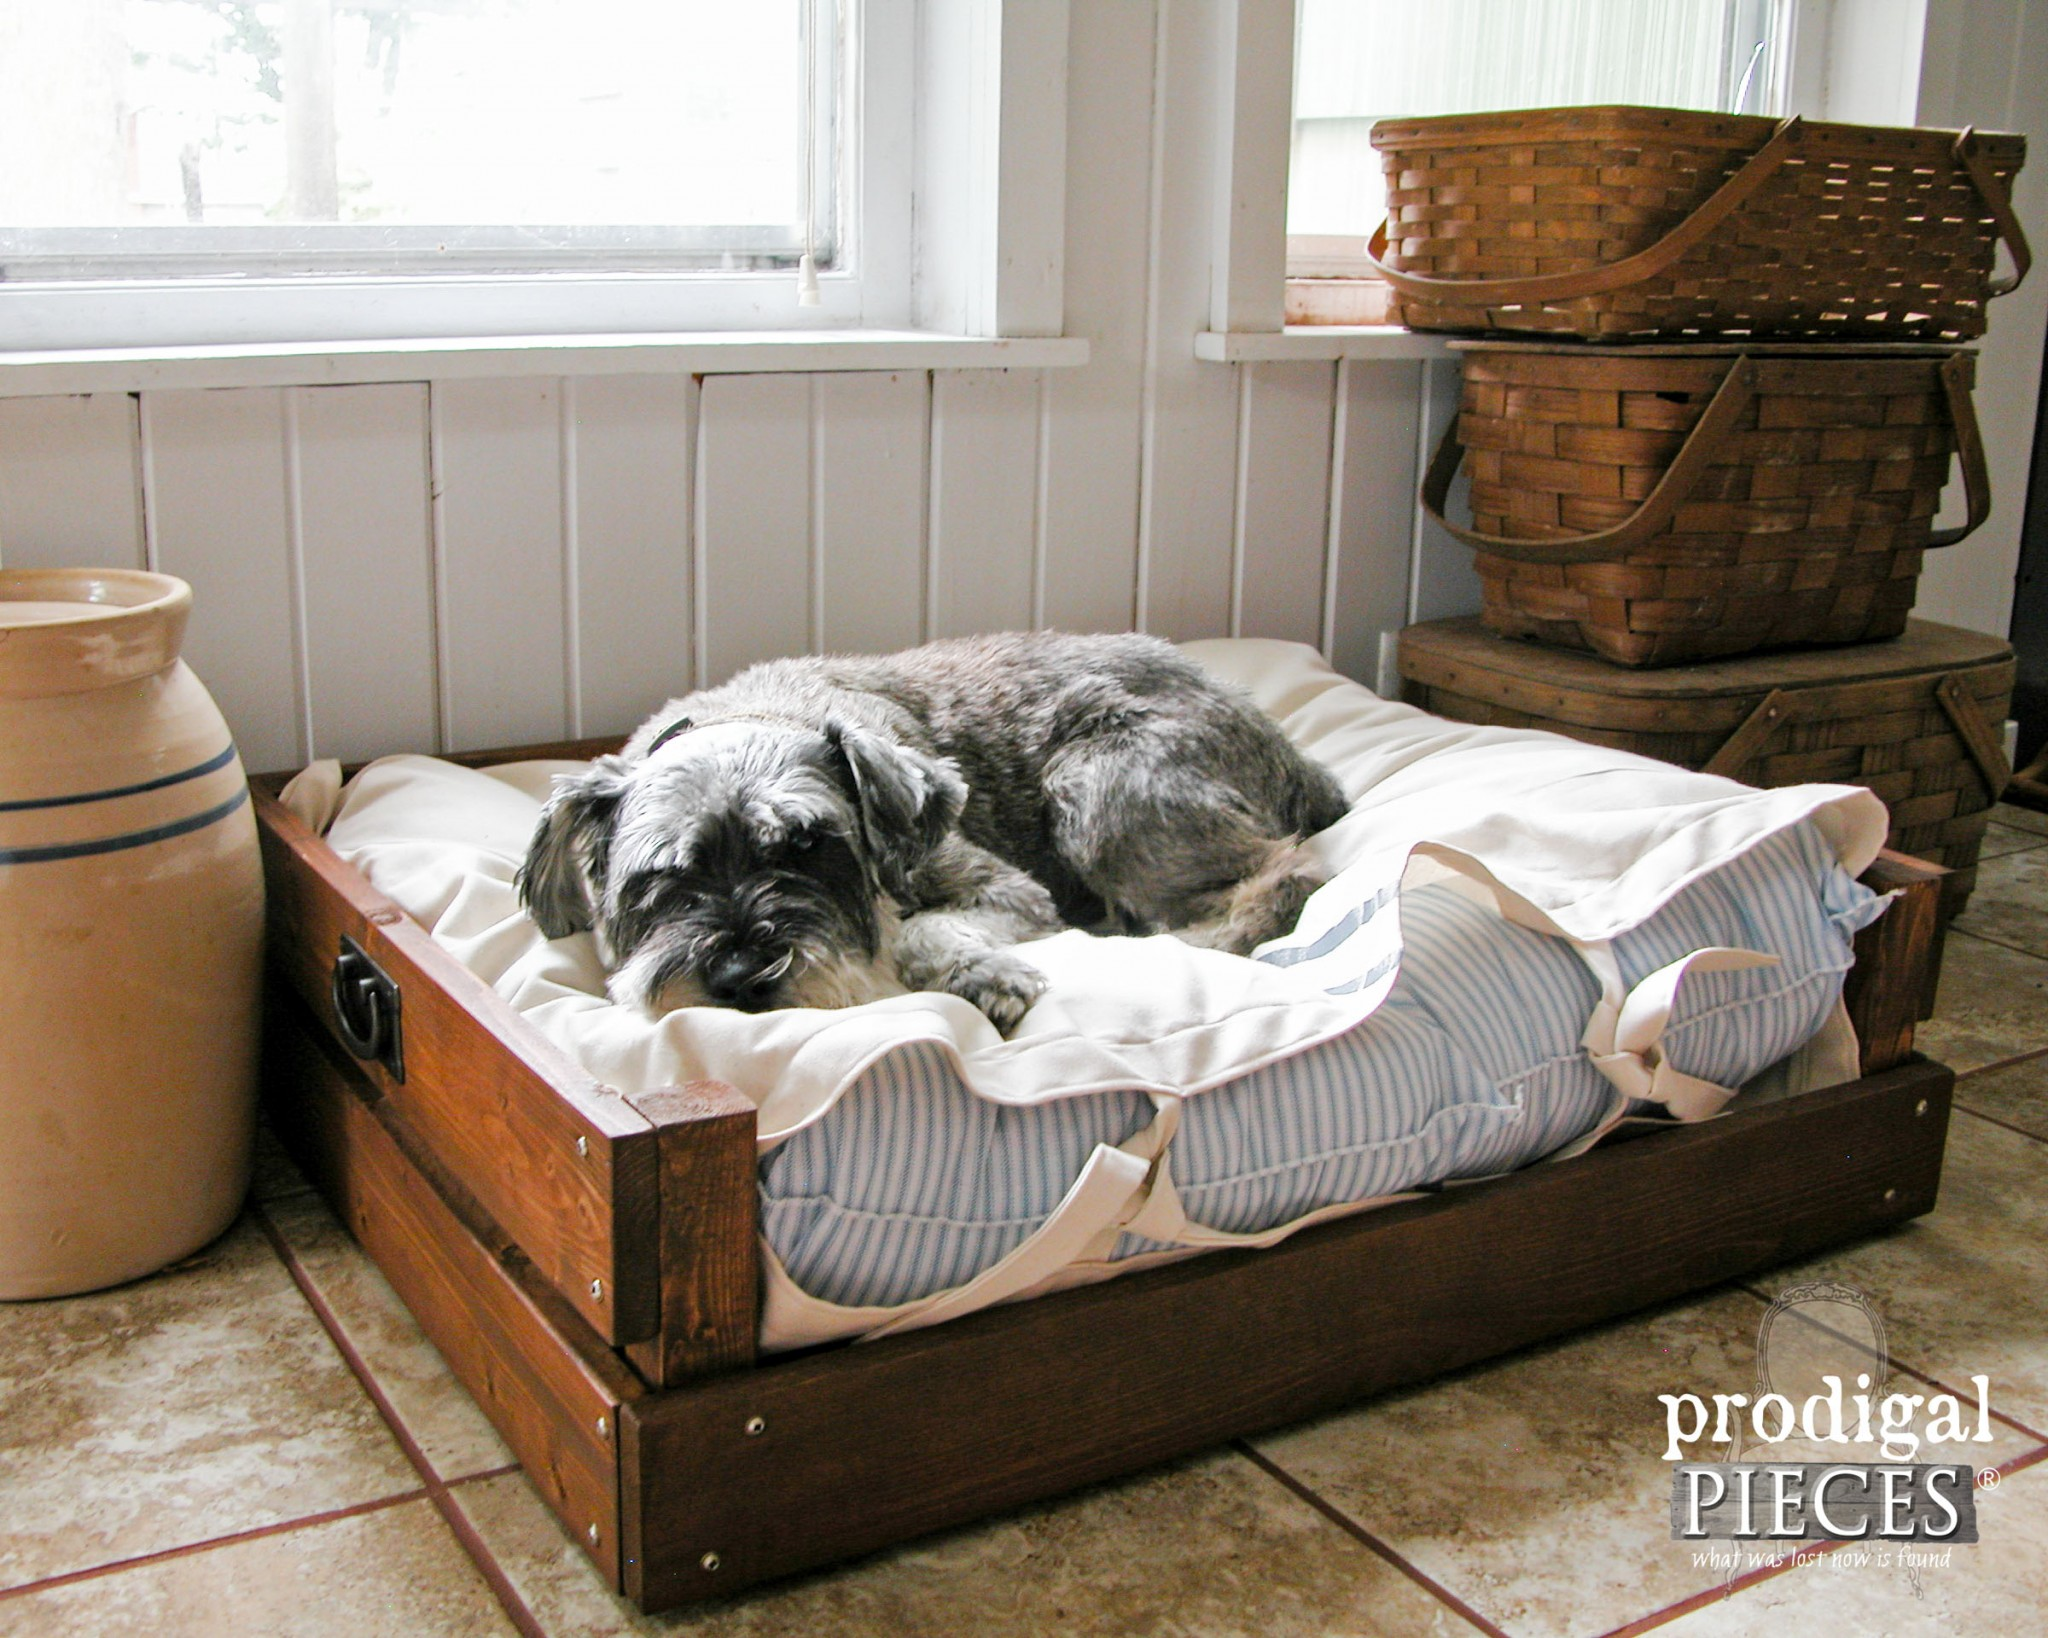 Rustic Farmhouse Grain Sack Style Pet Bed with Plans & Tutorial by Prodigal Pieces | www.prodigalpieces.com